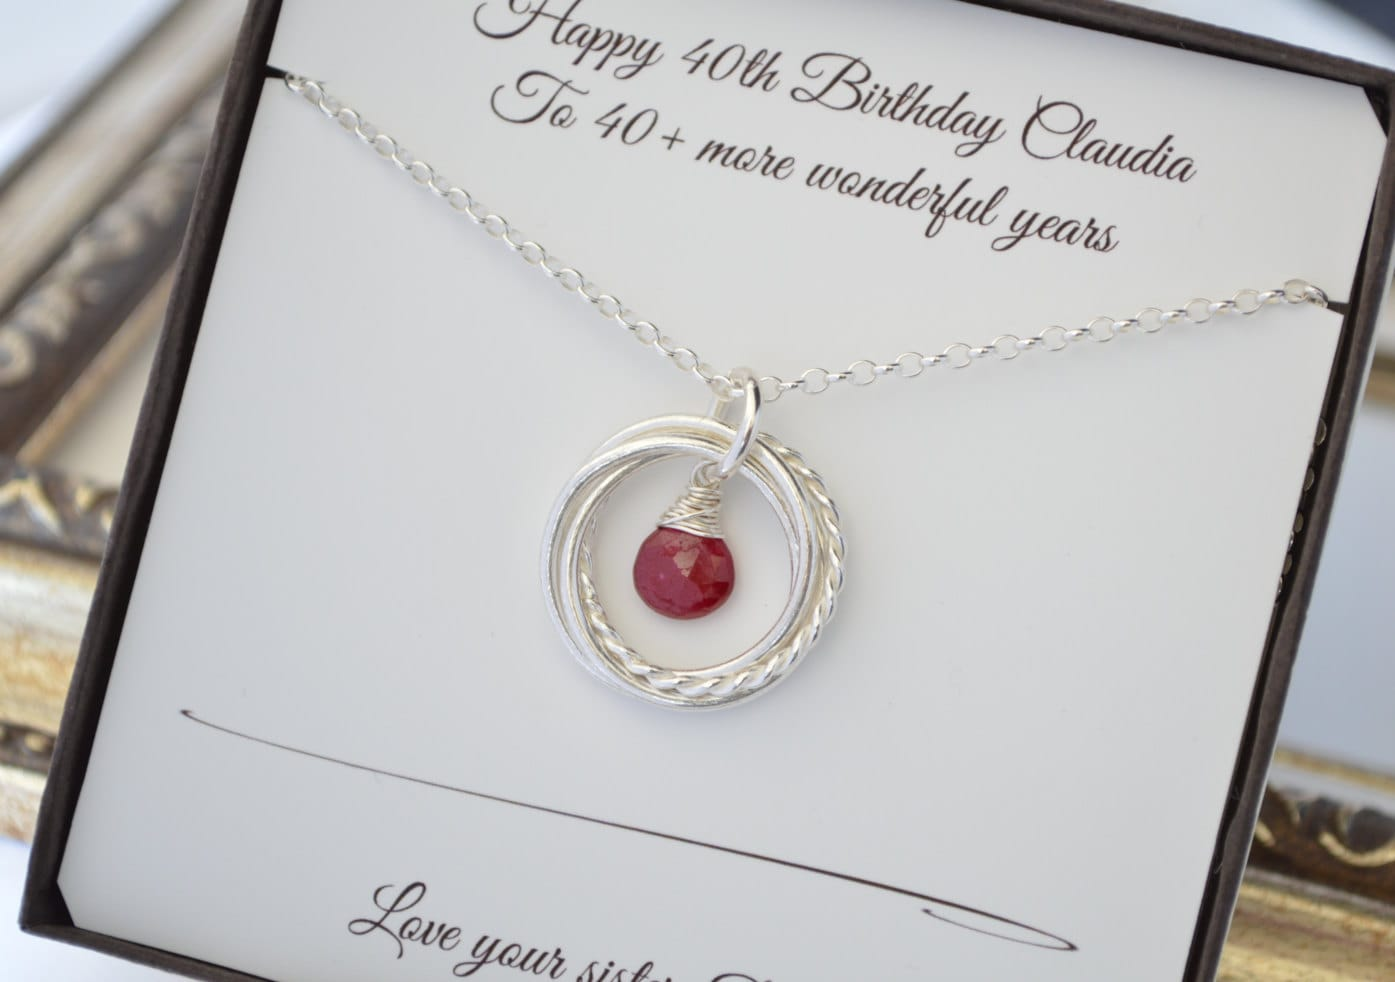 40th Wedding Anniversary Gifts For Friends: 40th Birthday Gift For Her, July Birthstone Necklace, 4